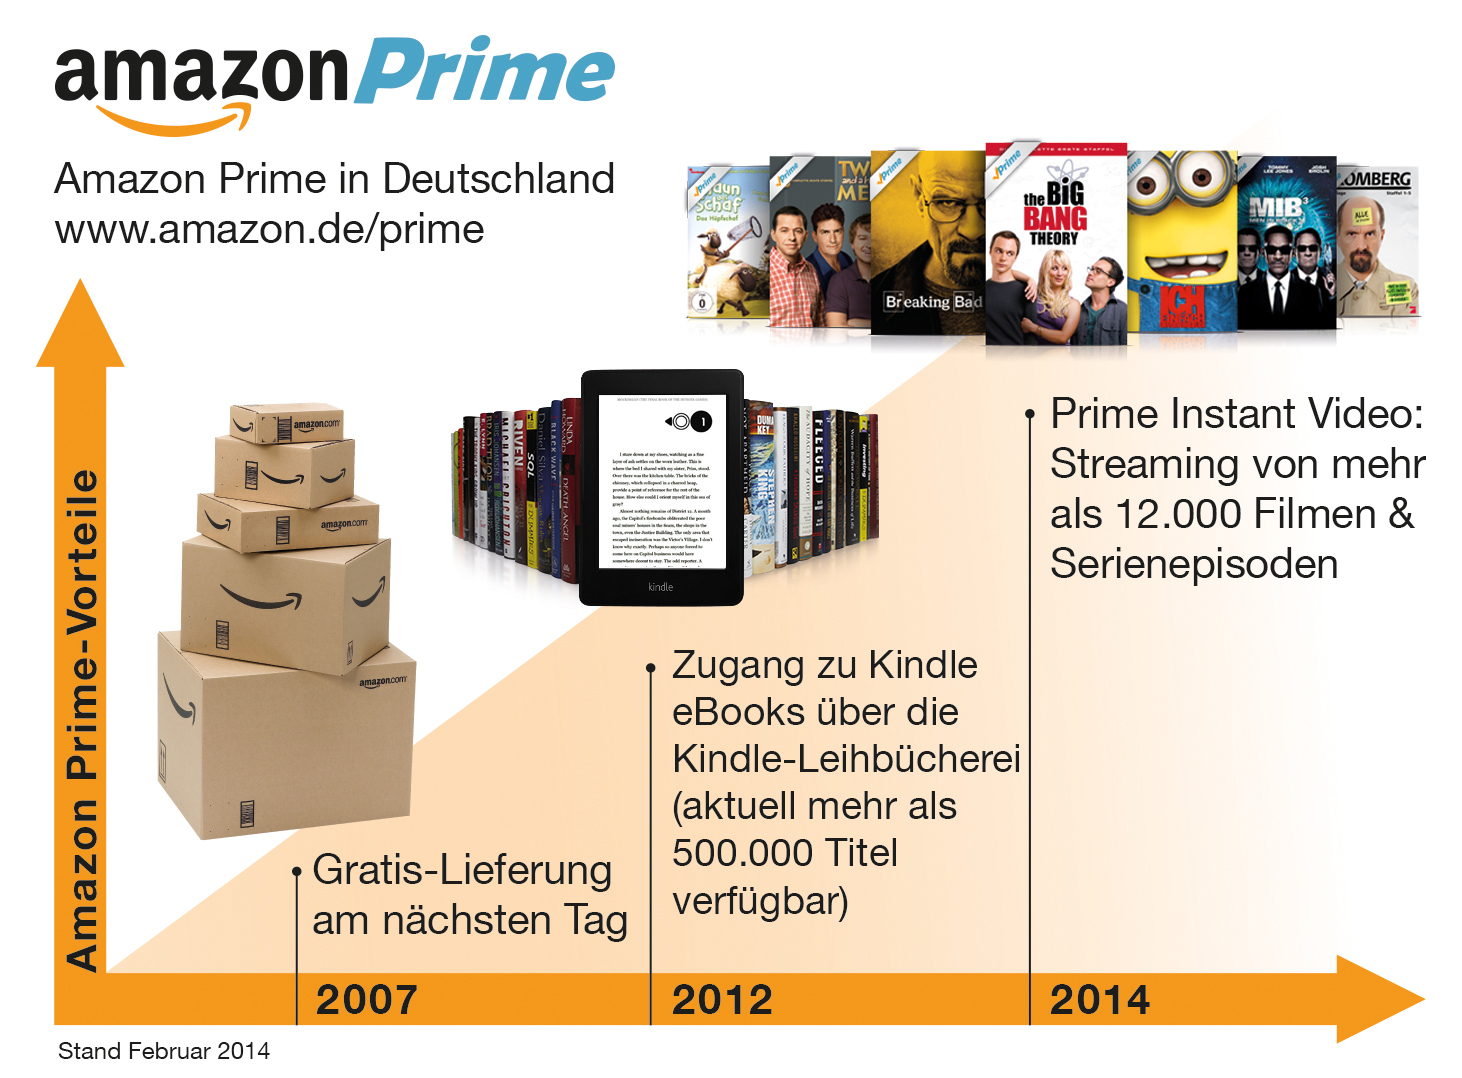 amazon integriert video streaming angebot von lovefilm in prime. Black Bedroom Furniture Sets. Home Design Ideas